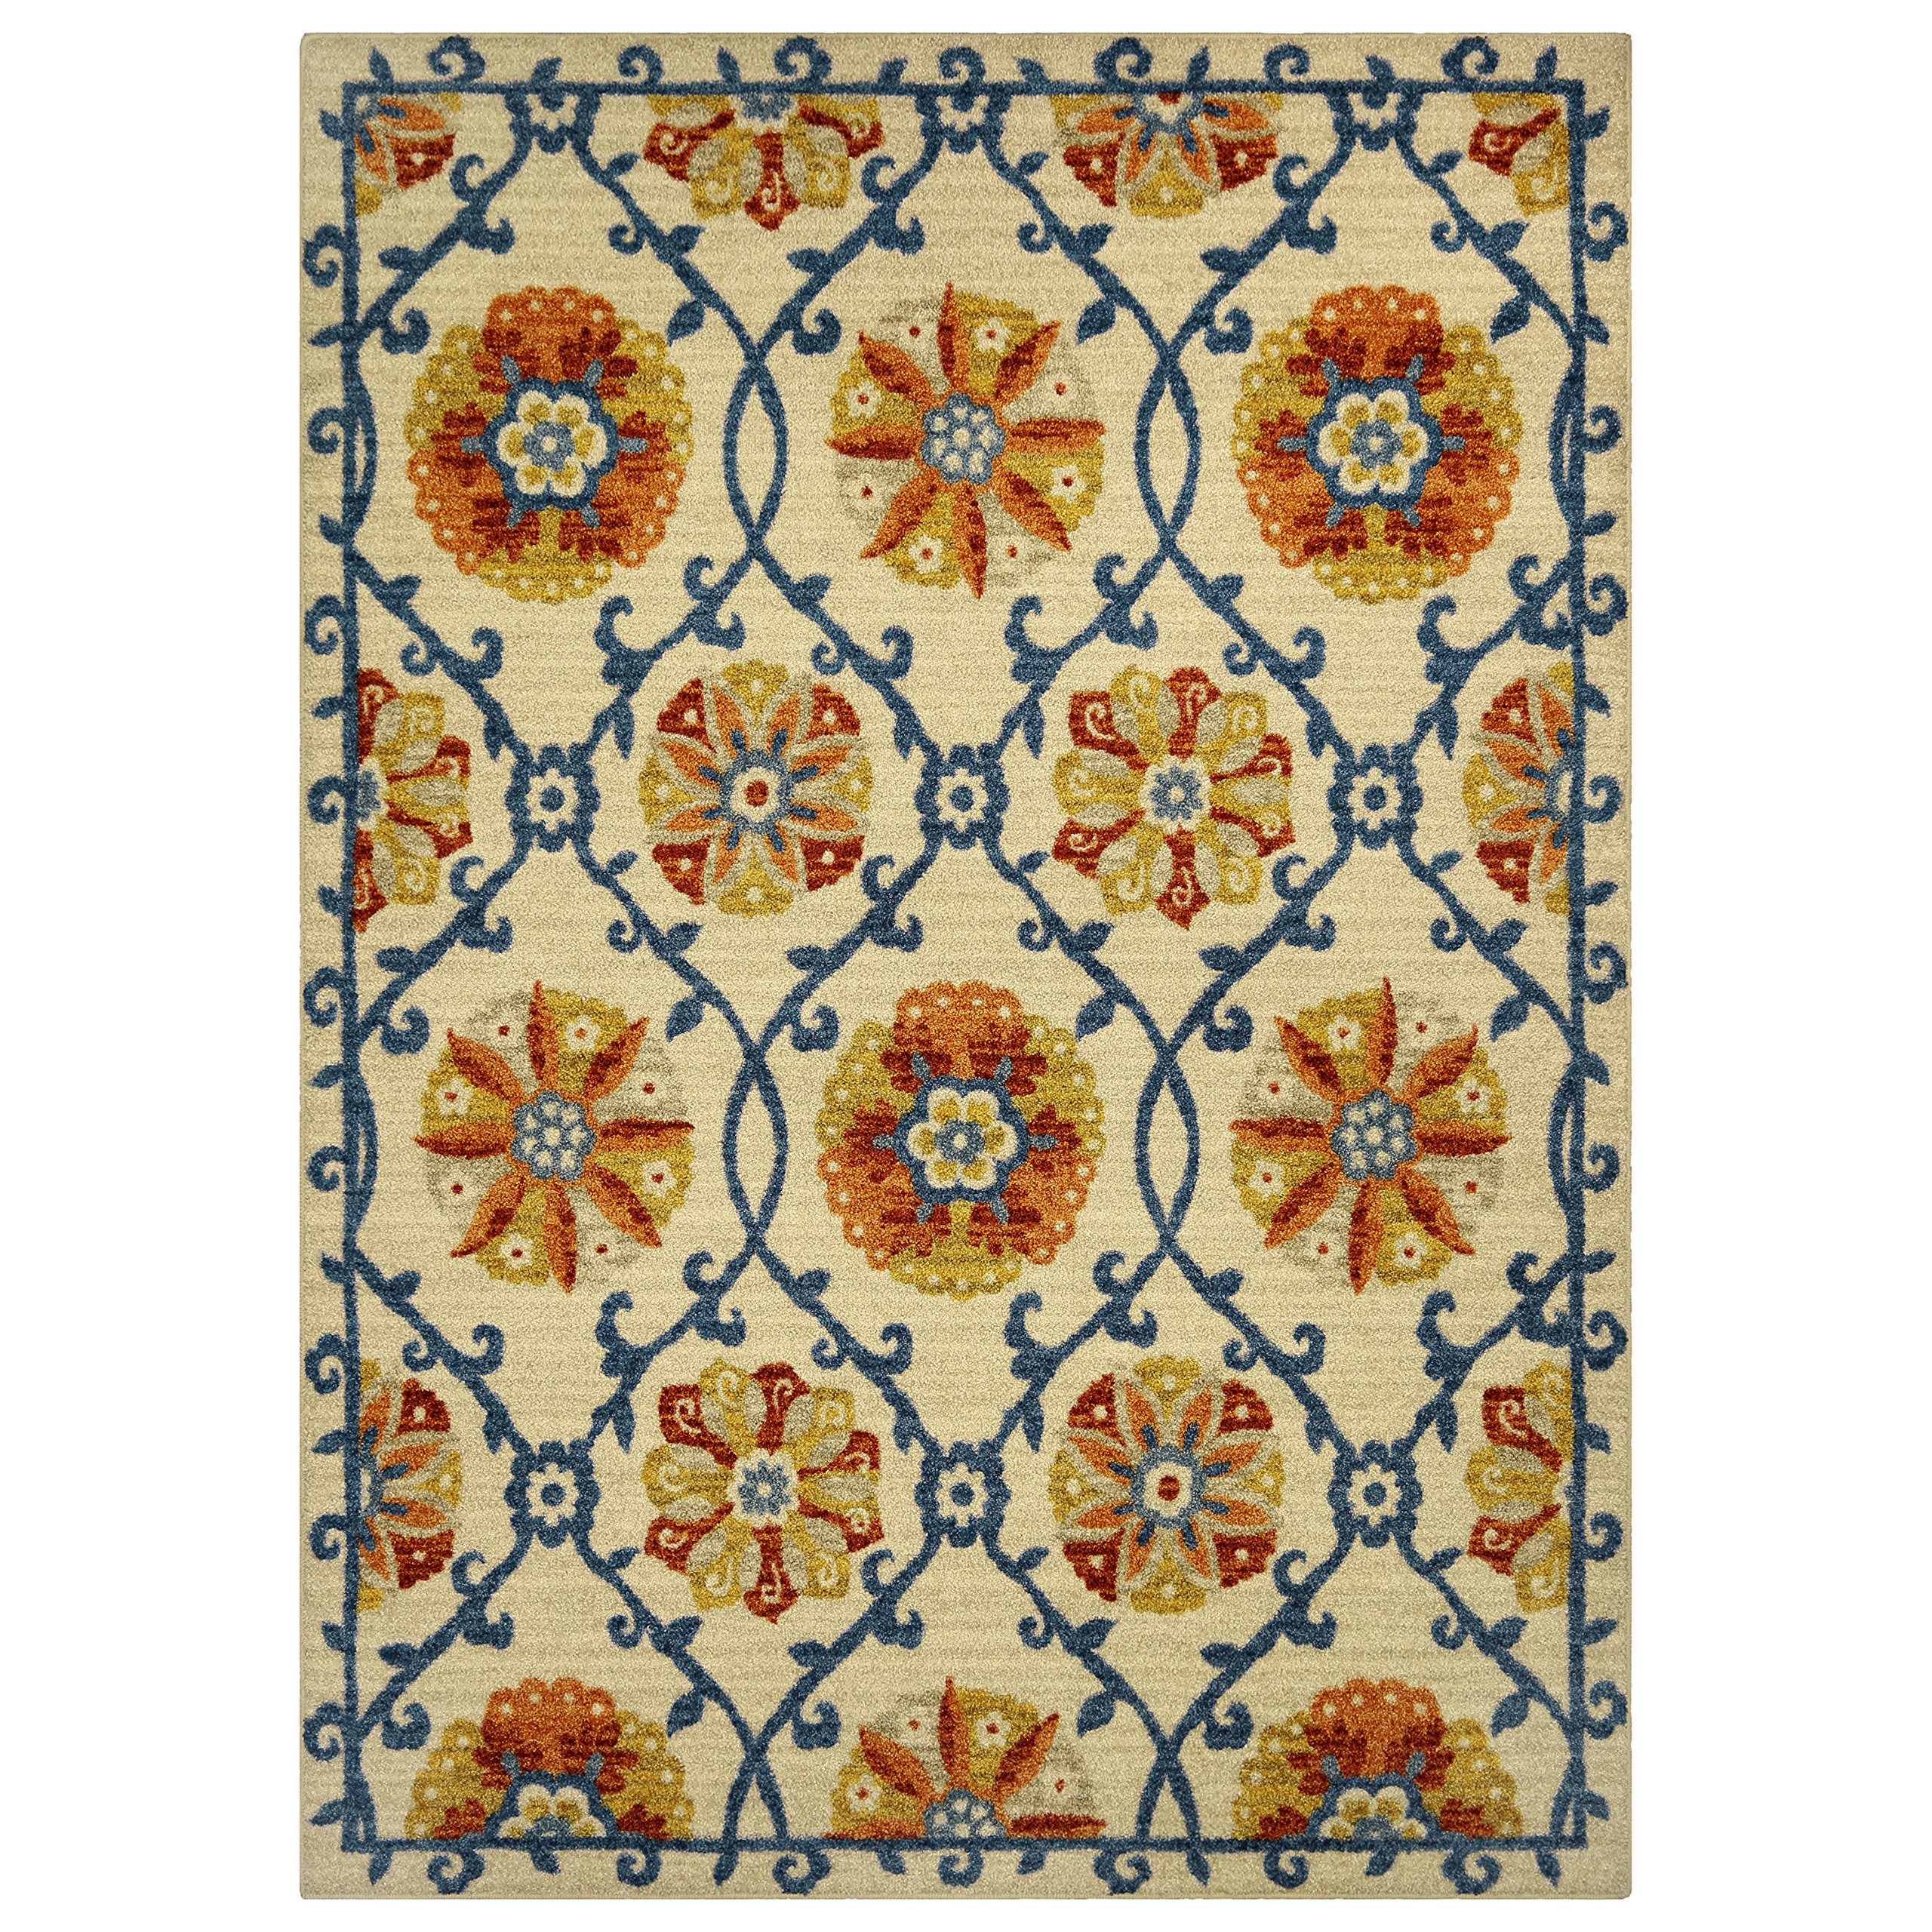 Area Rugs, Maples Rugs [Made in USA][Tricia Artwork Collection] 5' x 7' Non Slip Padded Large Rug for Living Room, Bedroom, and Dining Room